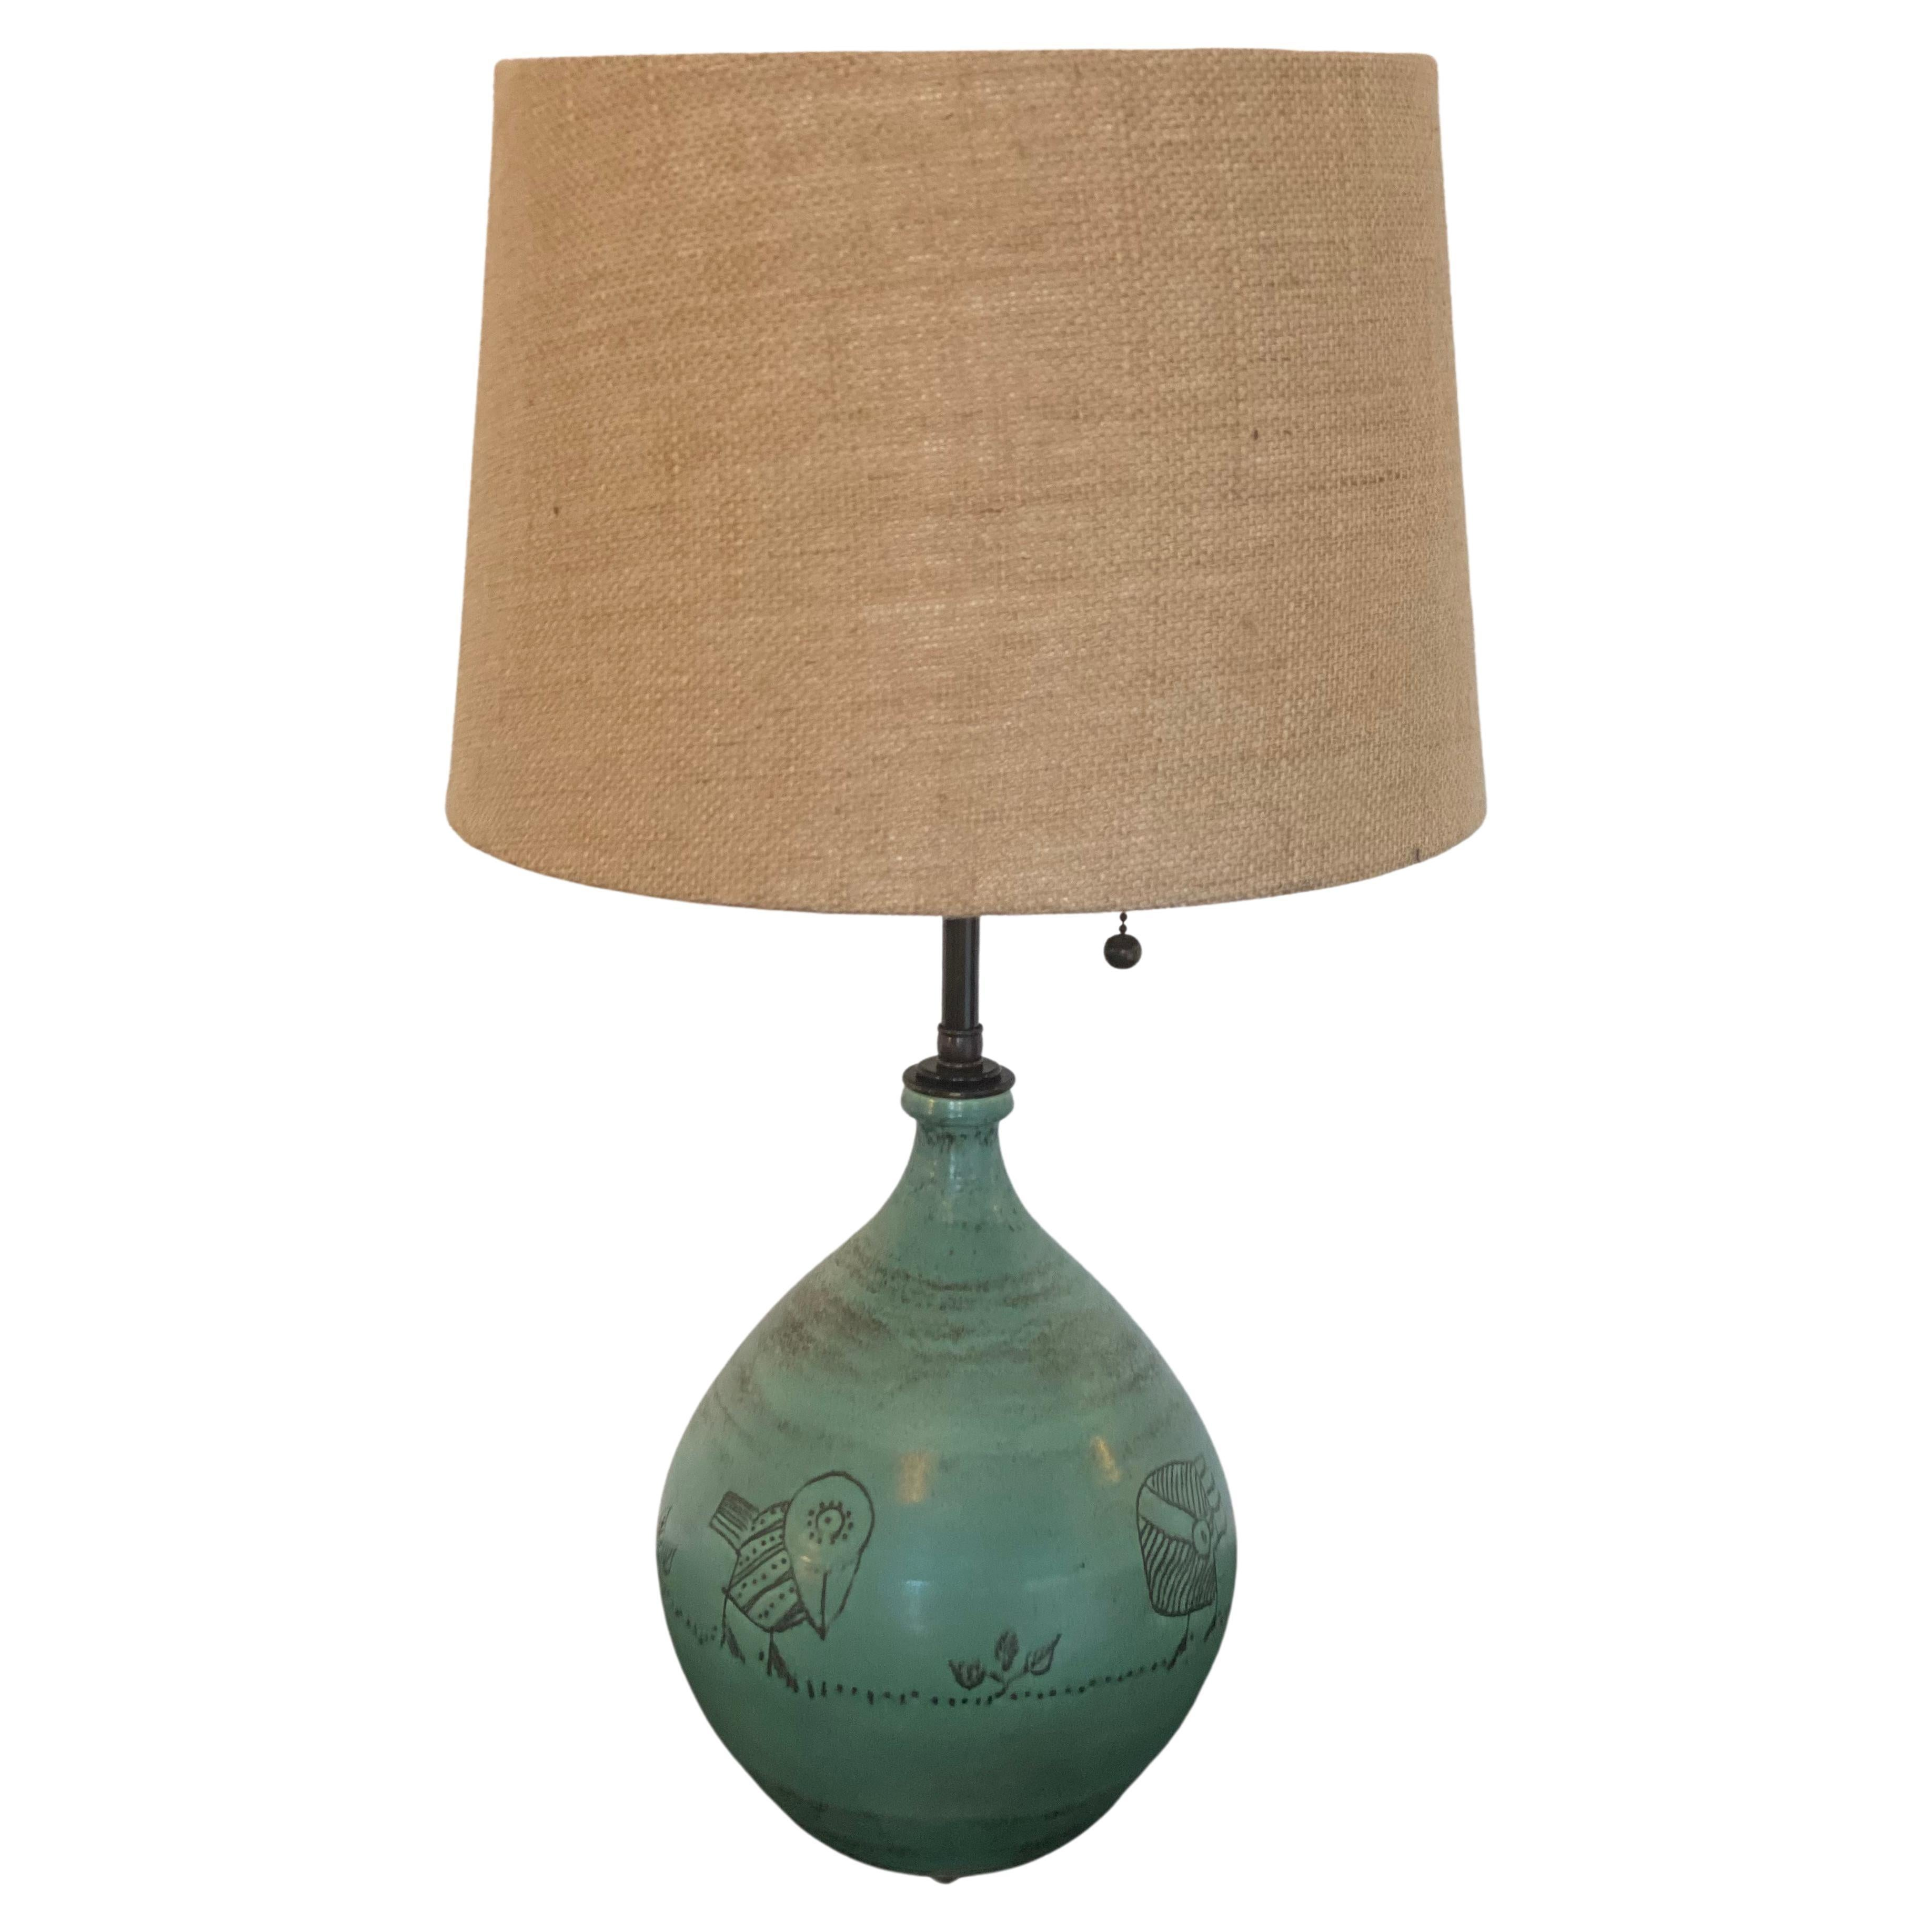 Jacques Blin French Art Pottery 1960s Table Lamp